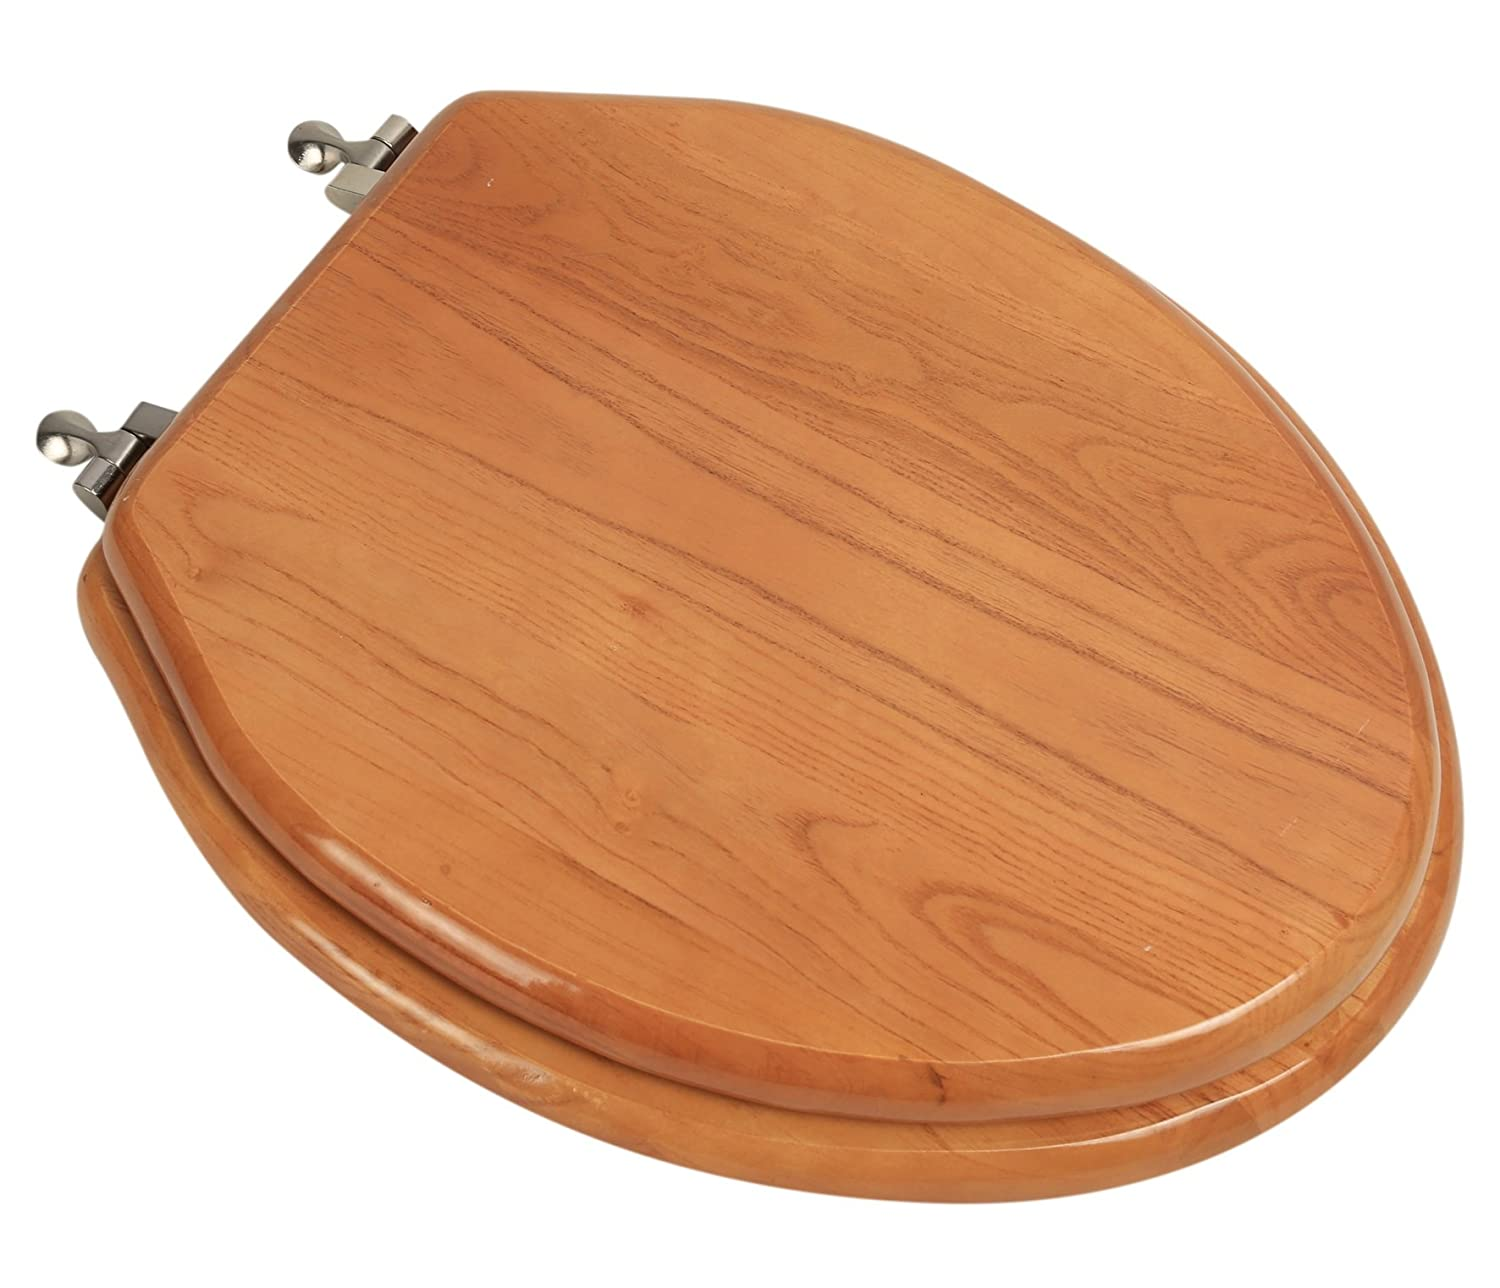 BathDecor 5F1E2-17BN Elongated Toilet Seat in Traditional Design with Brushed Nickel Metal Hinges, Natural Oak Finish